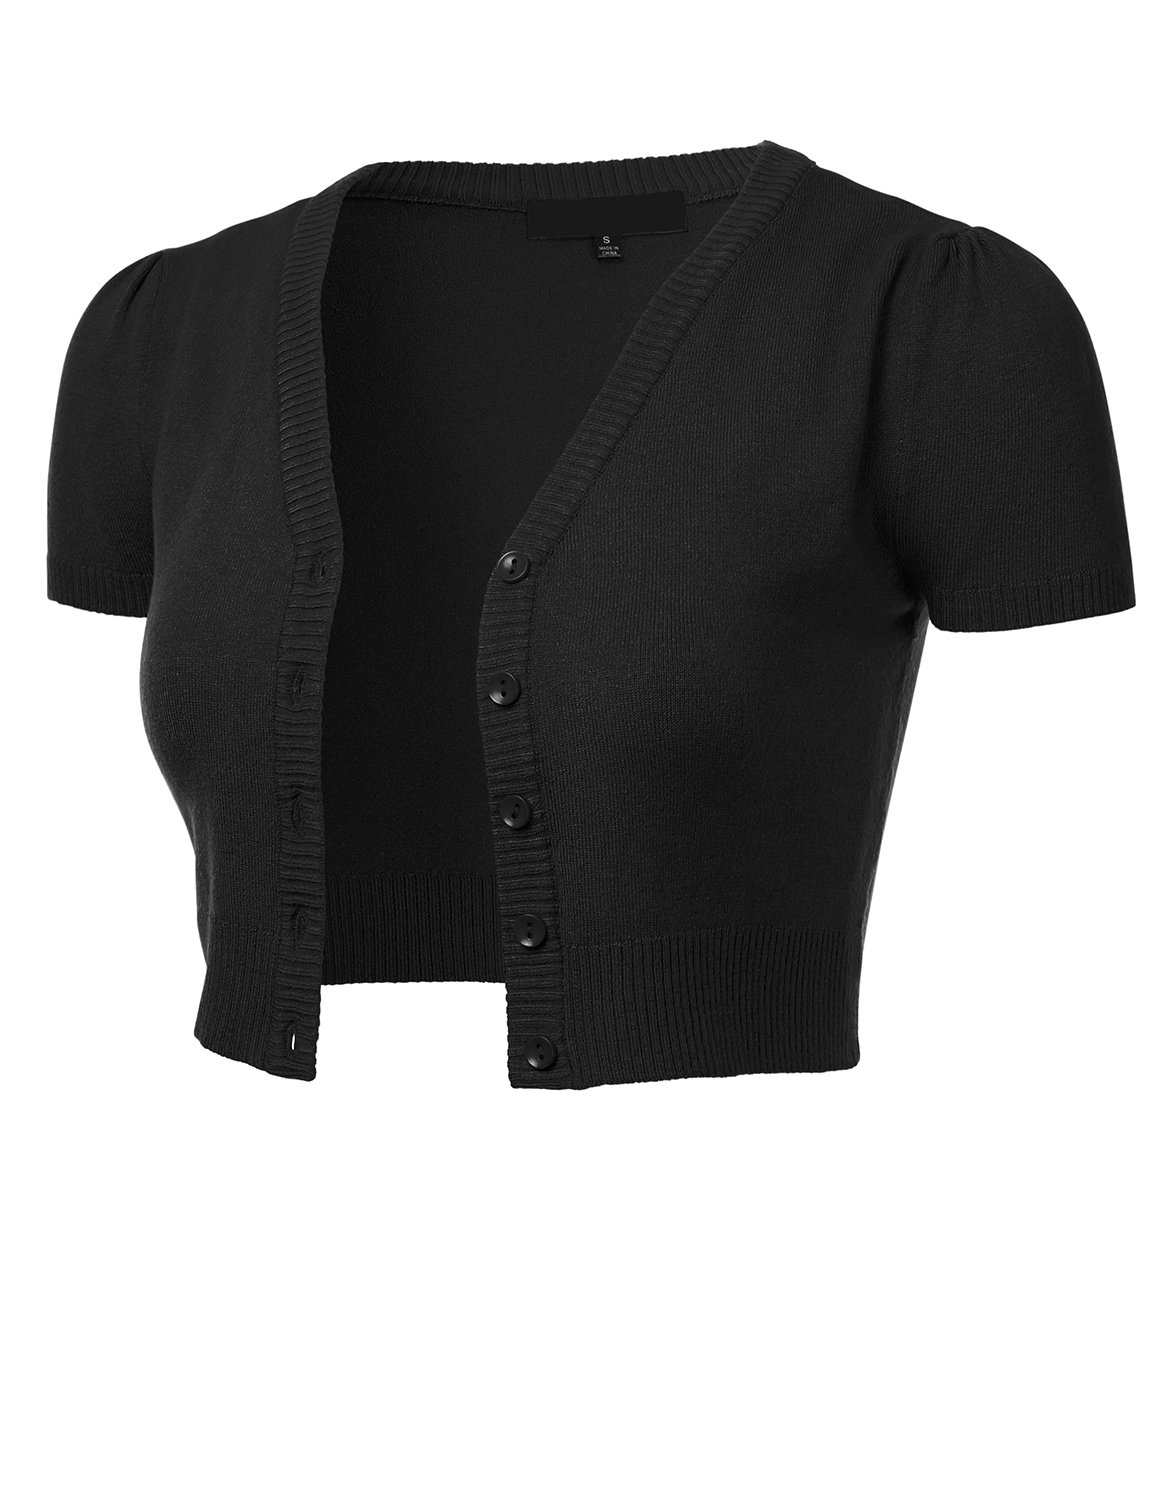 FLORIA Womens Button Down Short Sleeve Cropped Bolero Cardigan Sweater Black L